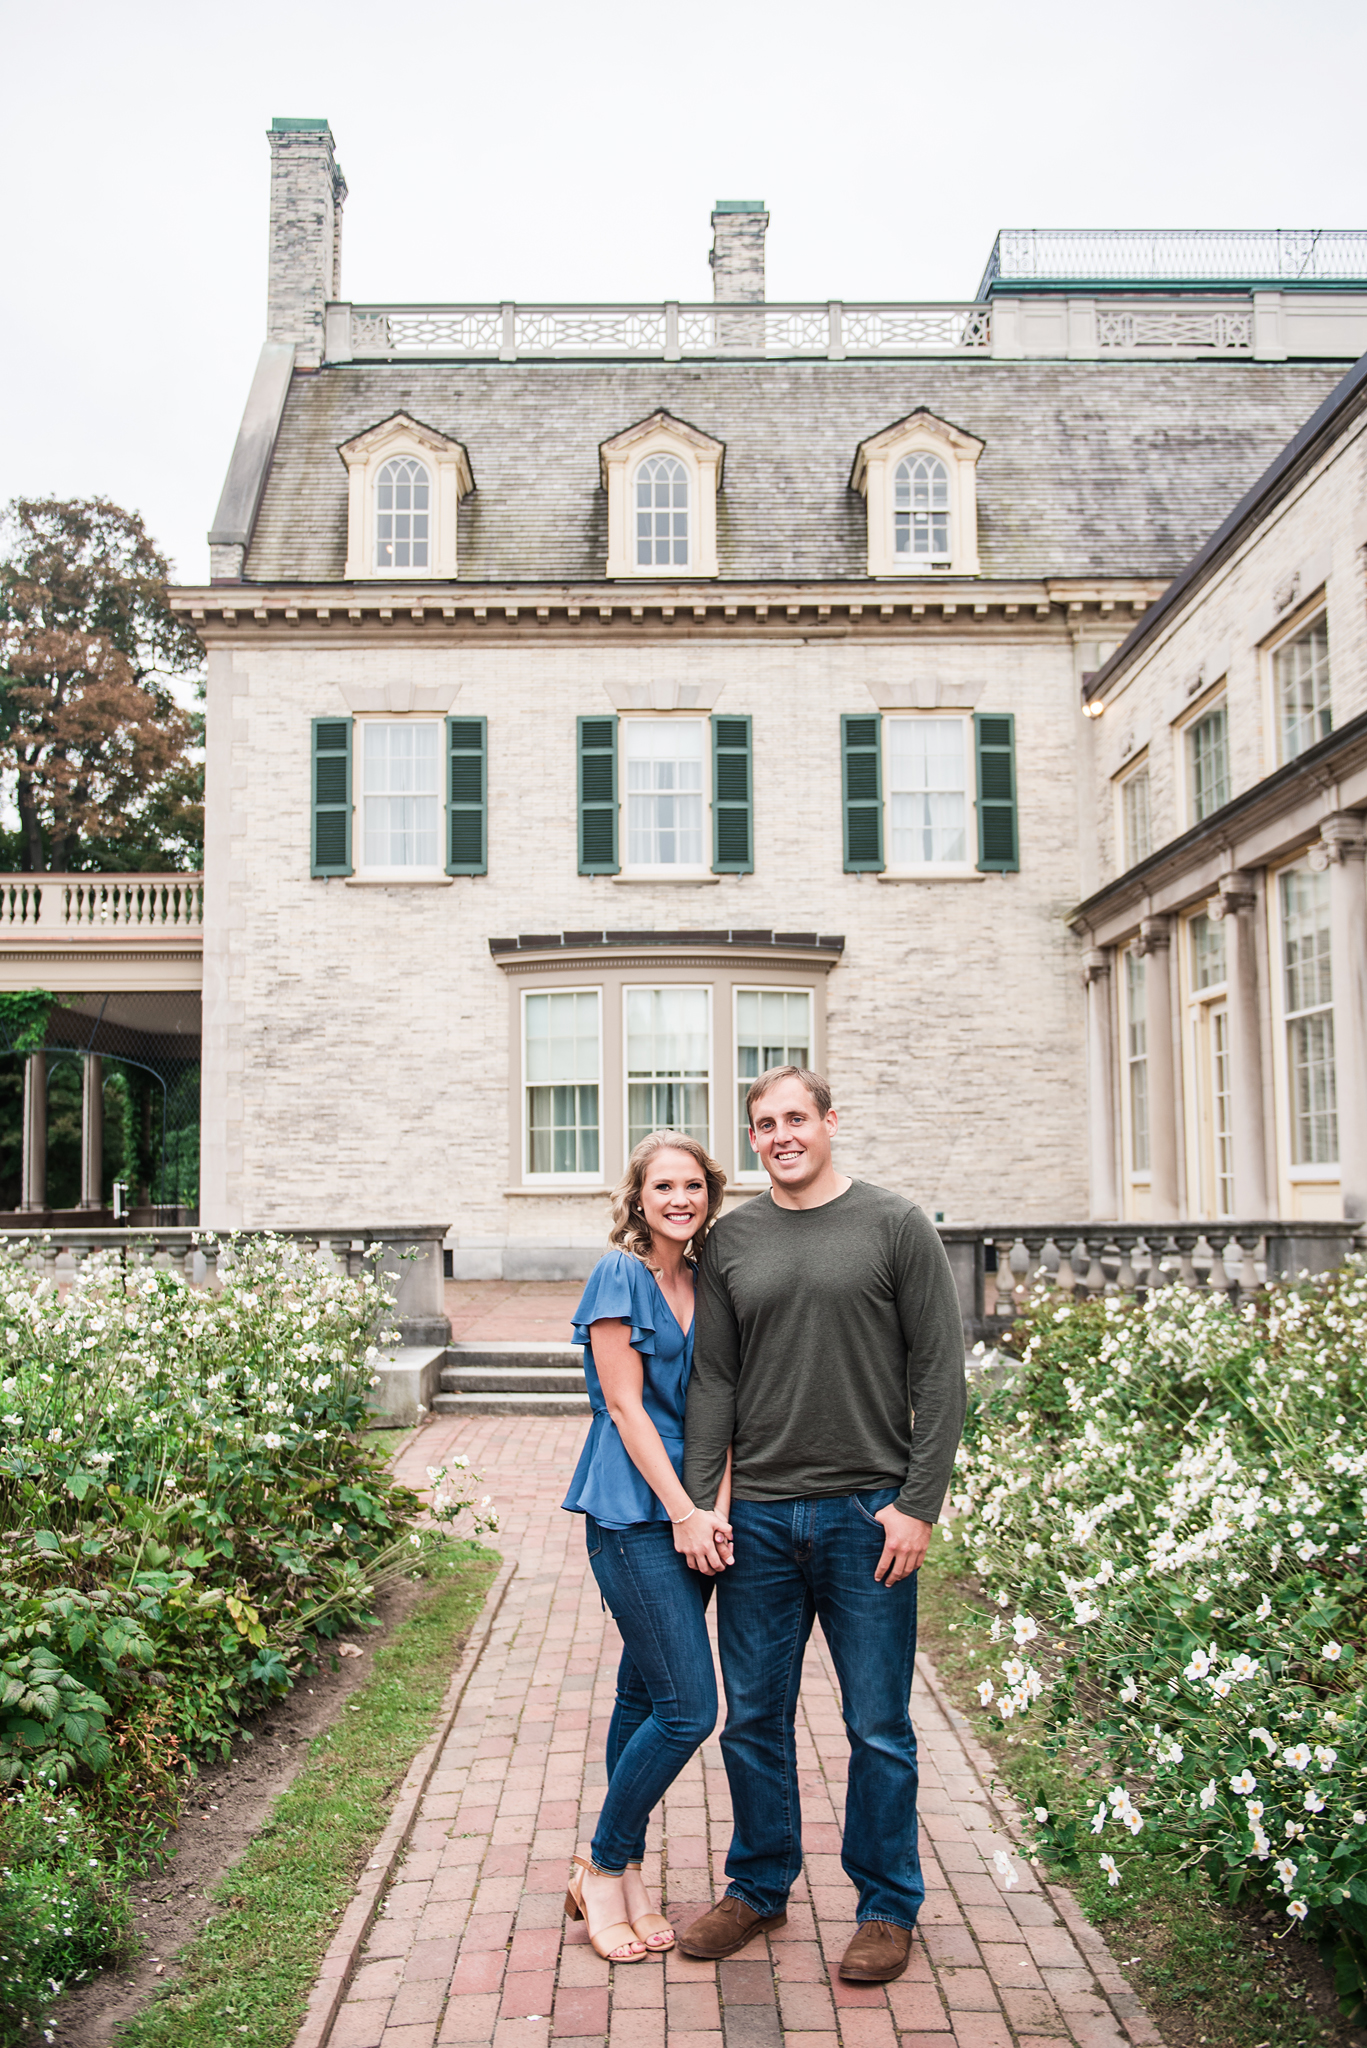 George_Eastman_House_Rochester_Yacht_Club_Rochester_Engagement_Session_JILL_STUDIO_Rochester_NY_Photographer_DSC_8063.jpg